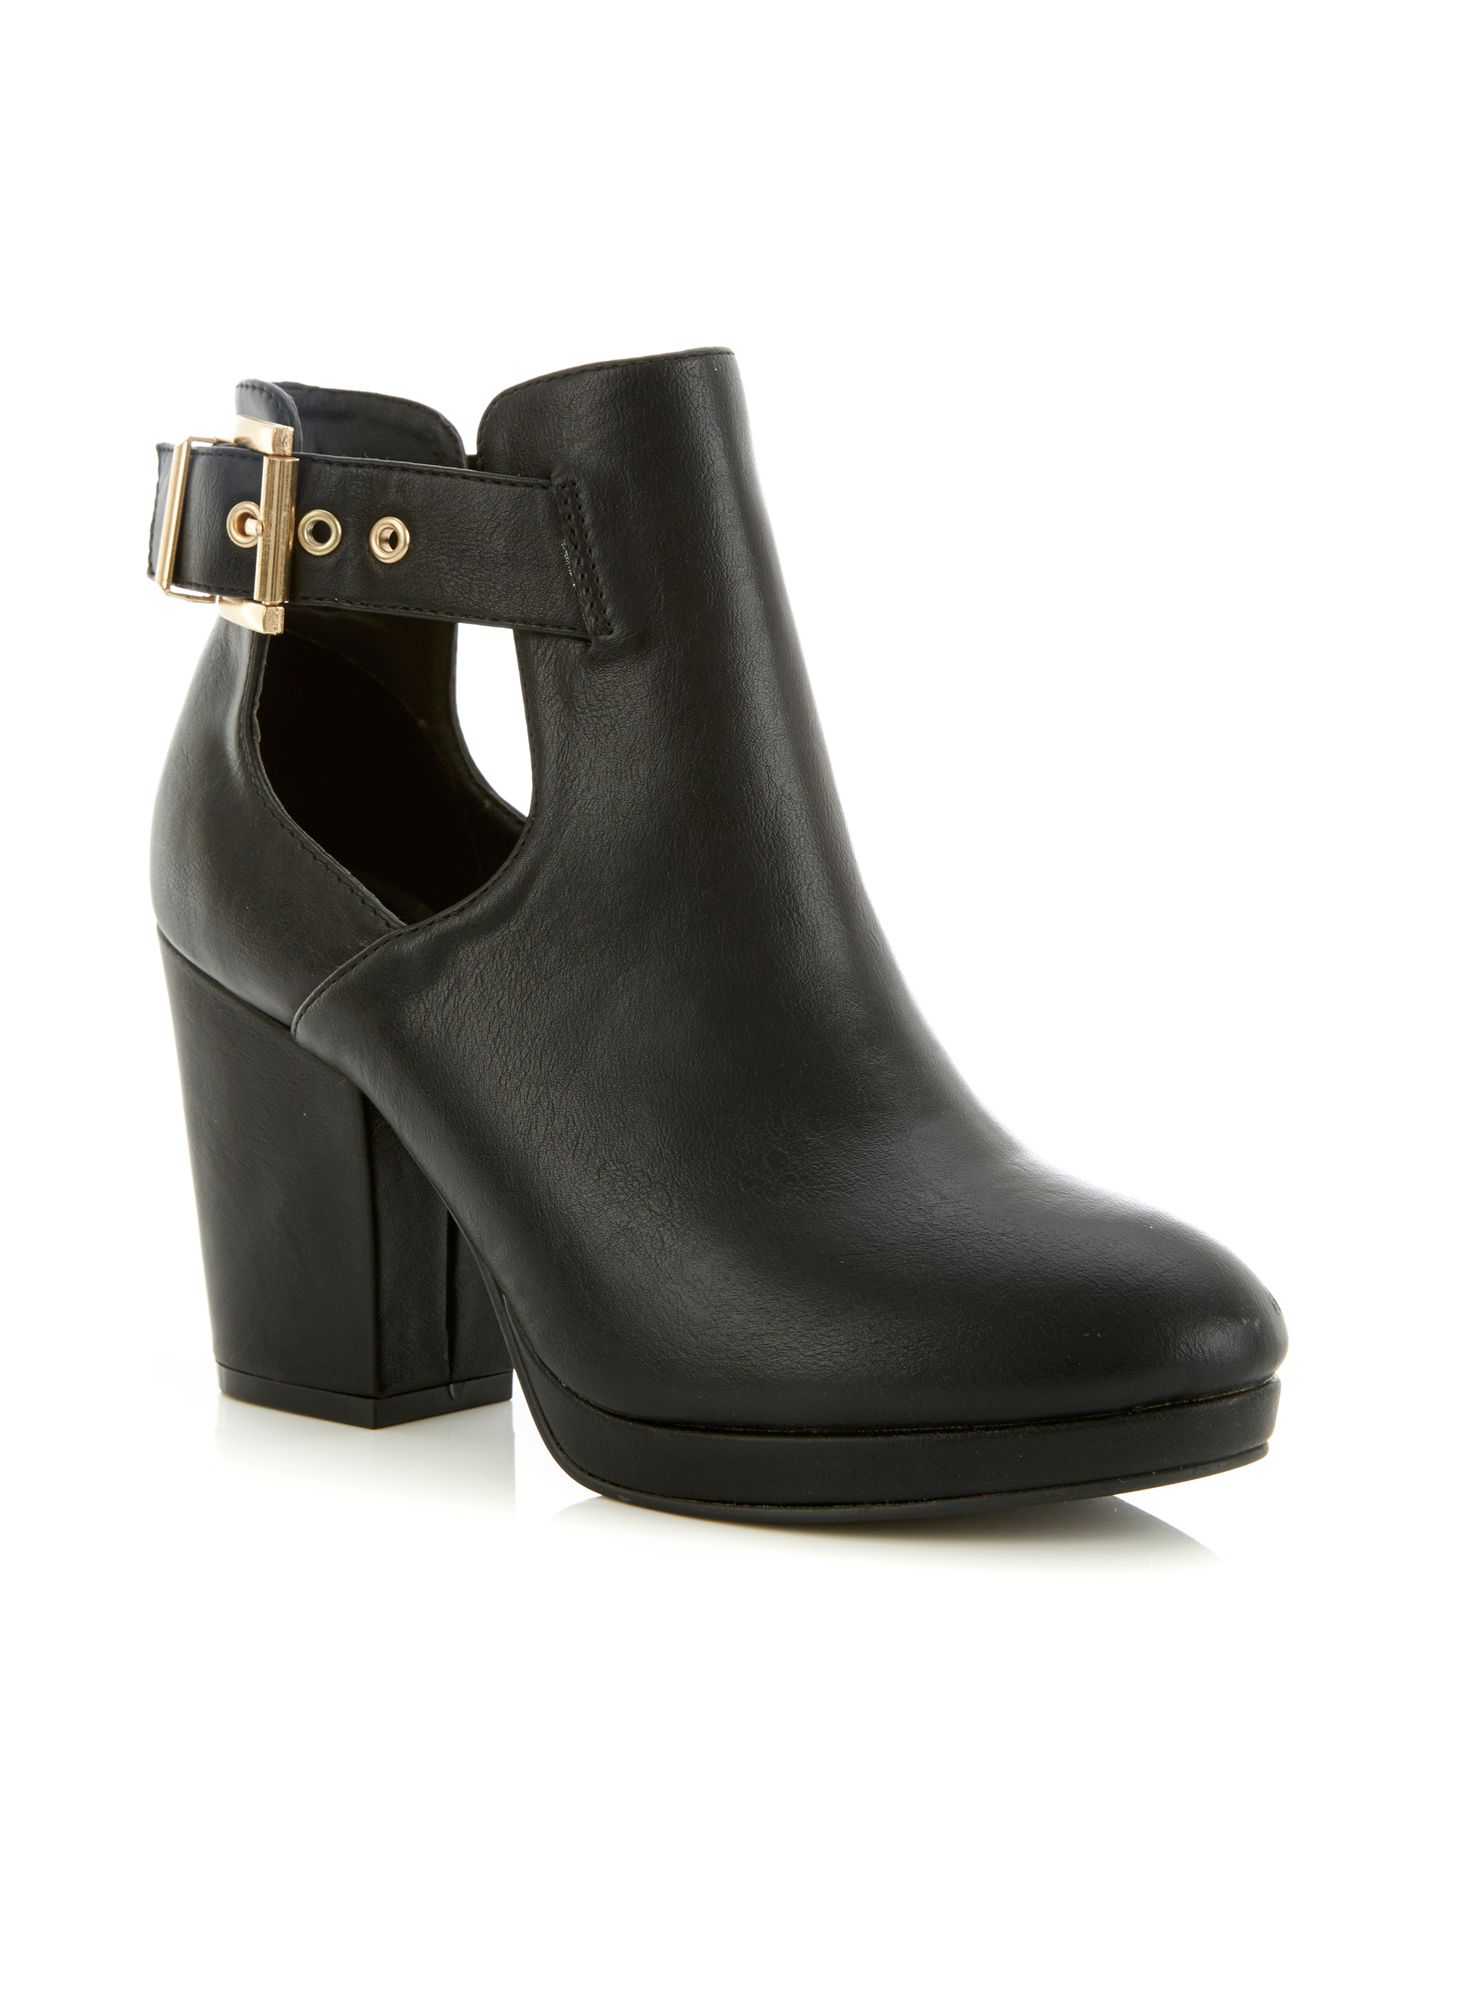 Amour cut out boot